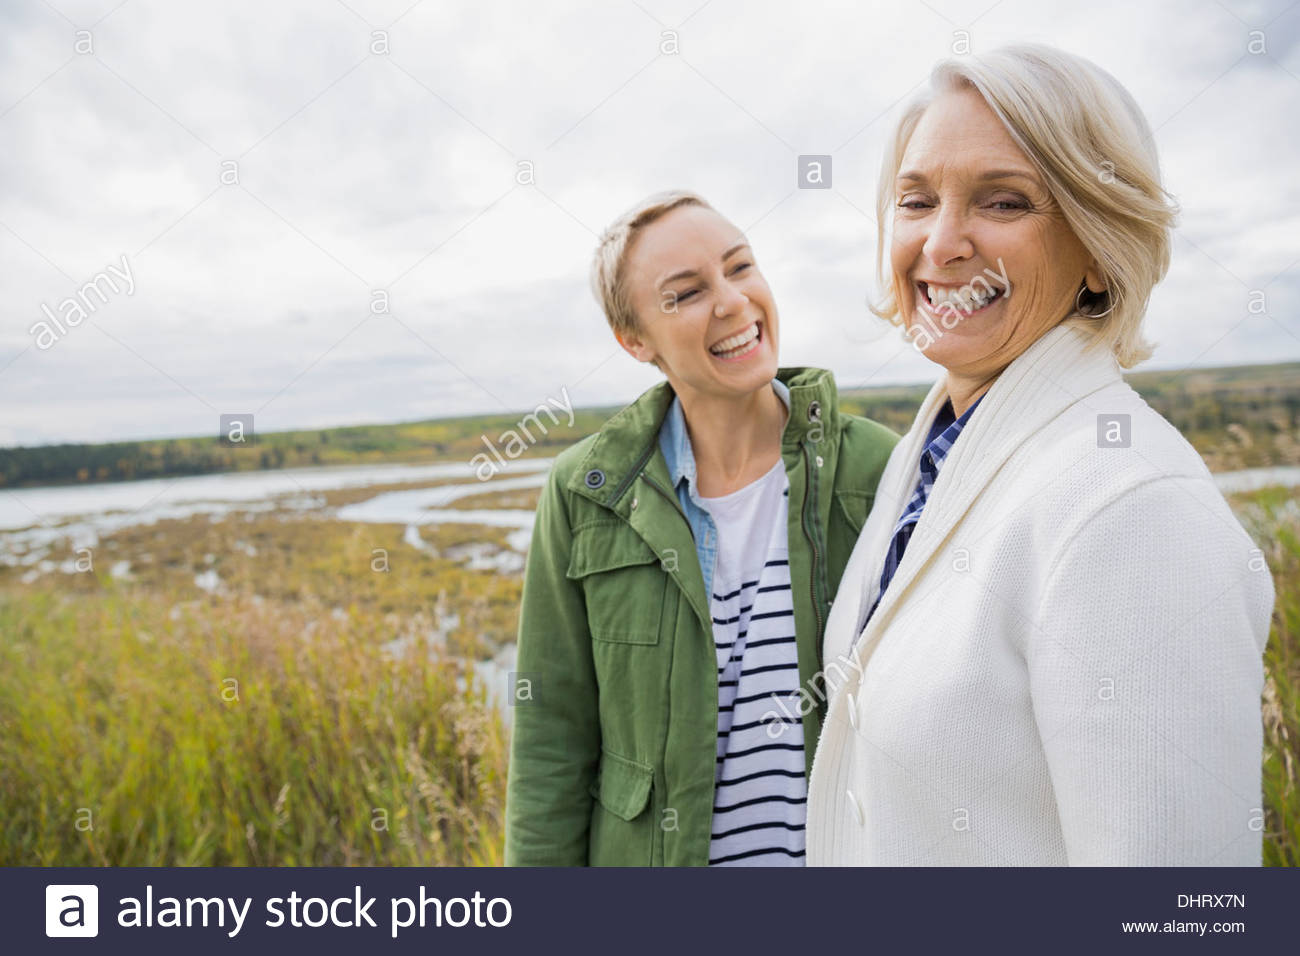 Cheerful mother and daughter at lakeshore - Stock Image